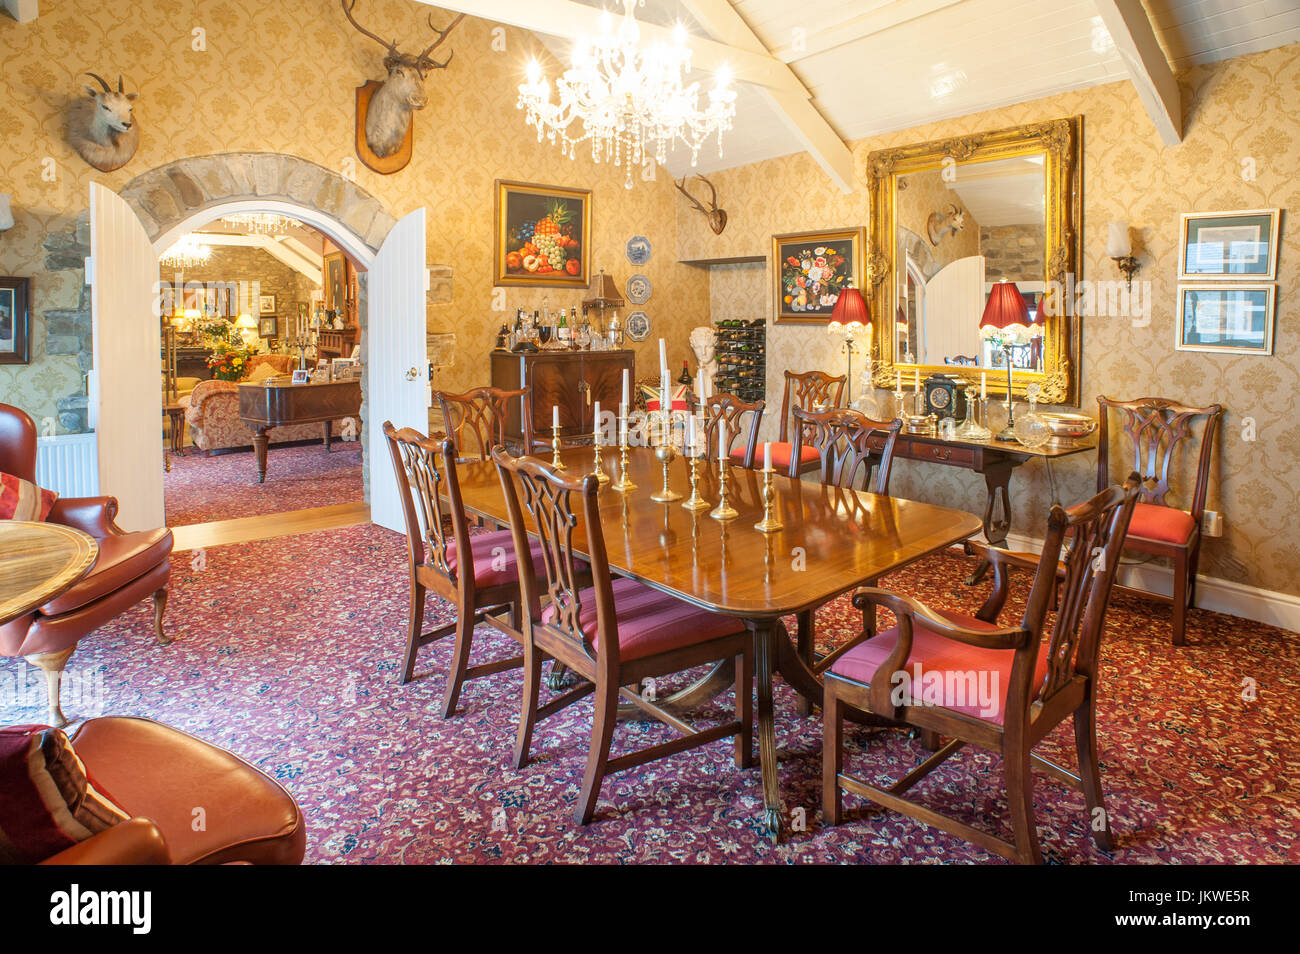 Formal dining room - Stock Image